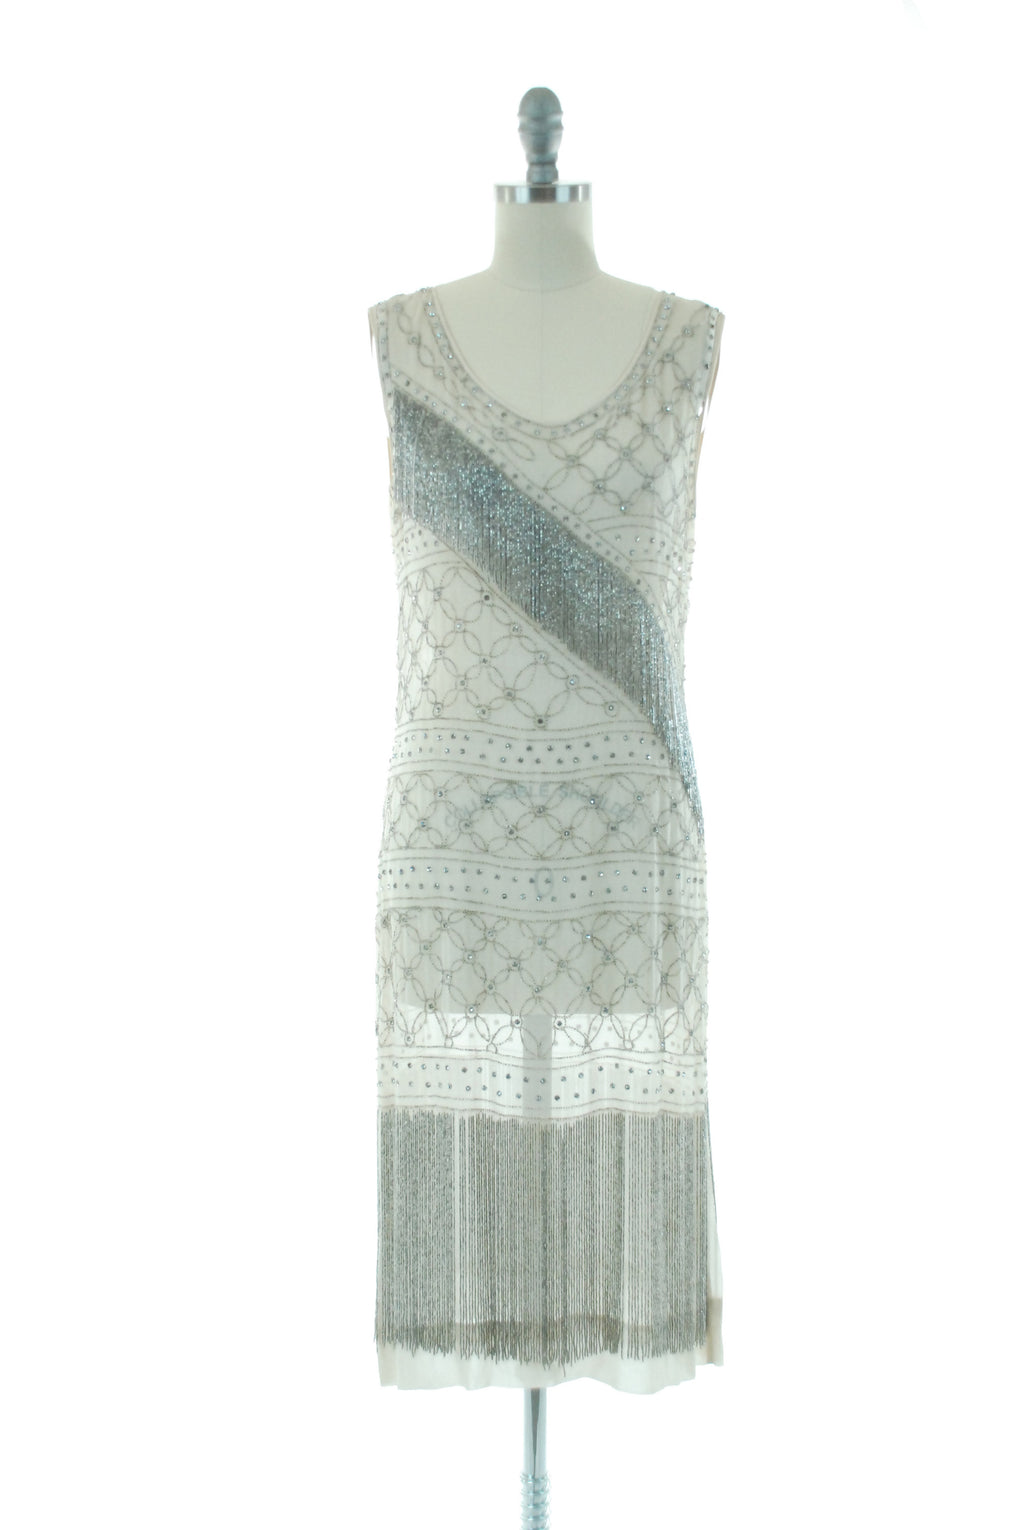 Vintage 1920s Dress - RARE 20s Flapper Dress With Beaded Fringe and Studded Rhinestones in Sheer White